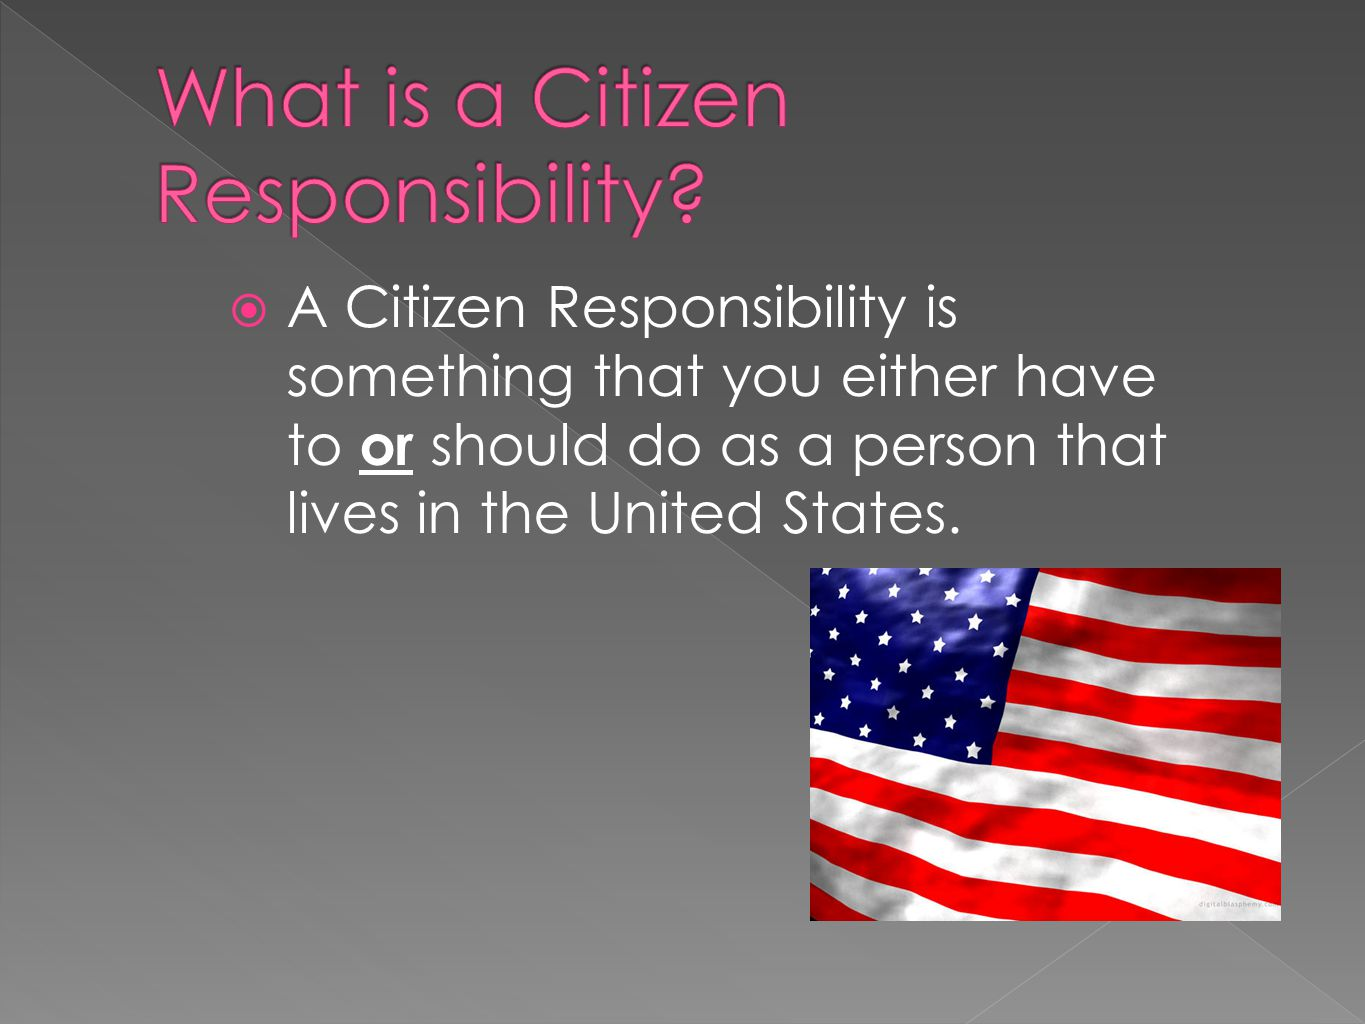  A Citizen Responsibility is something that you either have to or should do as a person that lives in the United States.